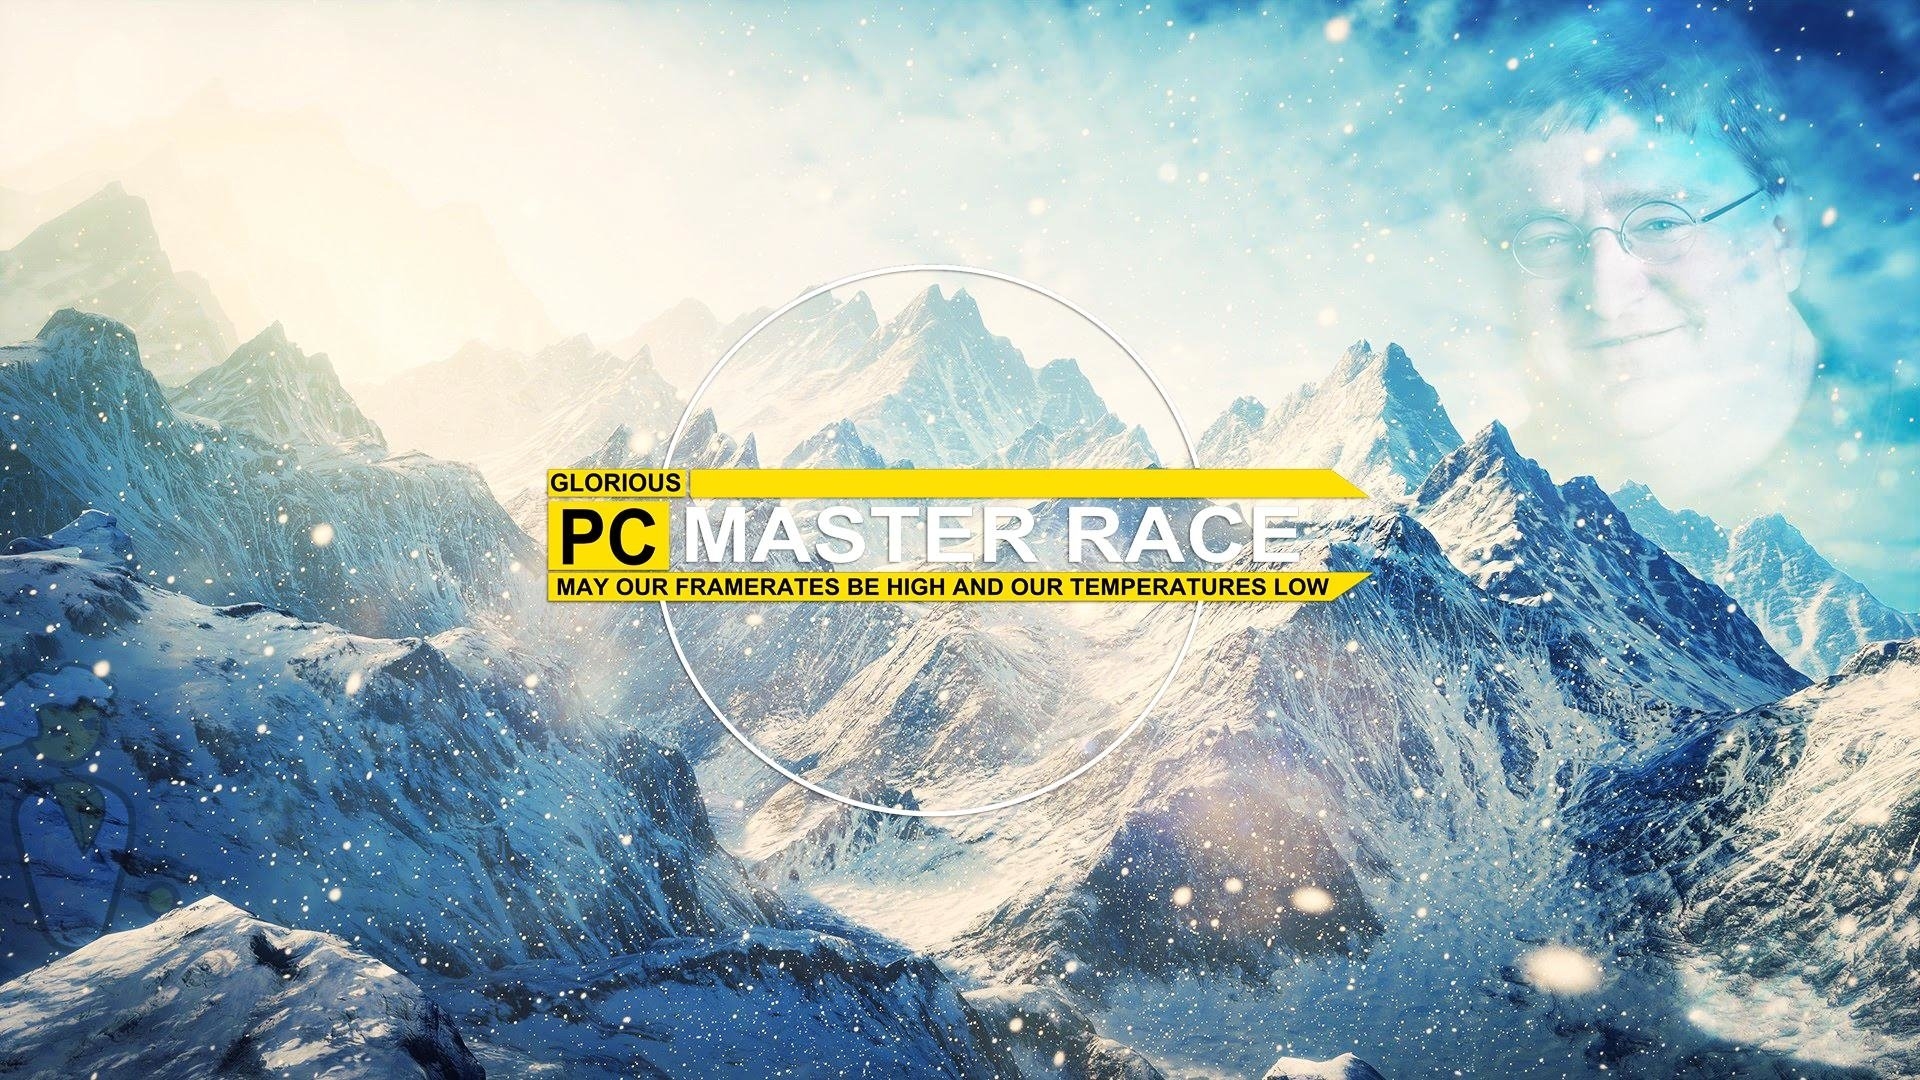 pc master race wallpaper - photo #35